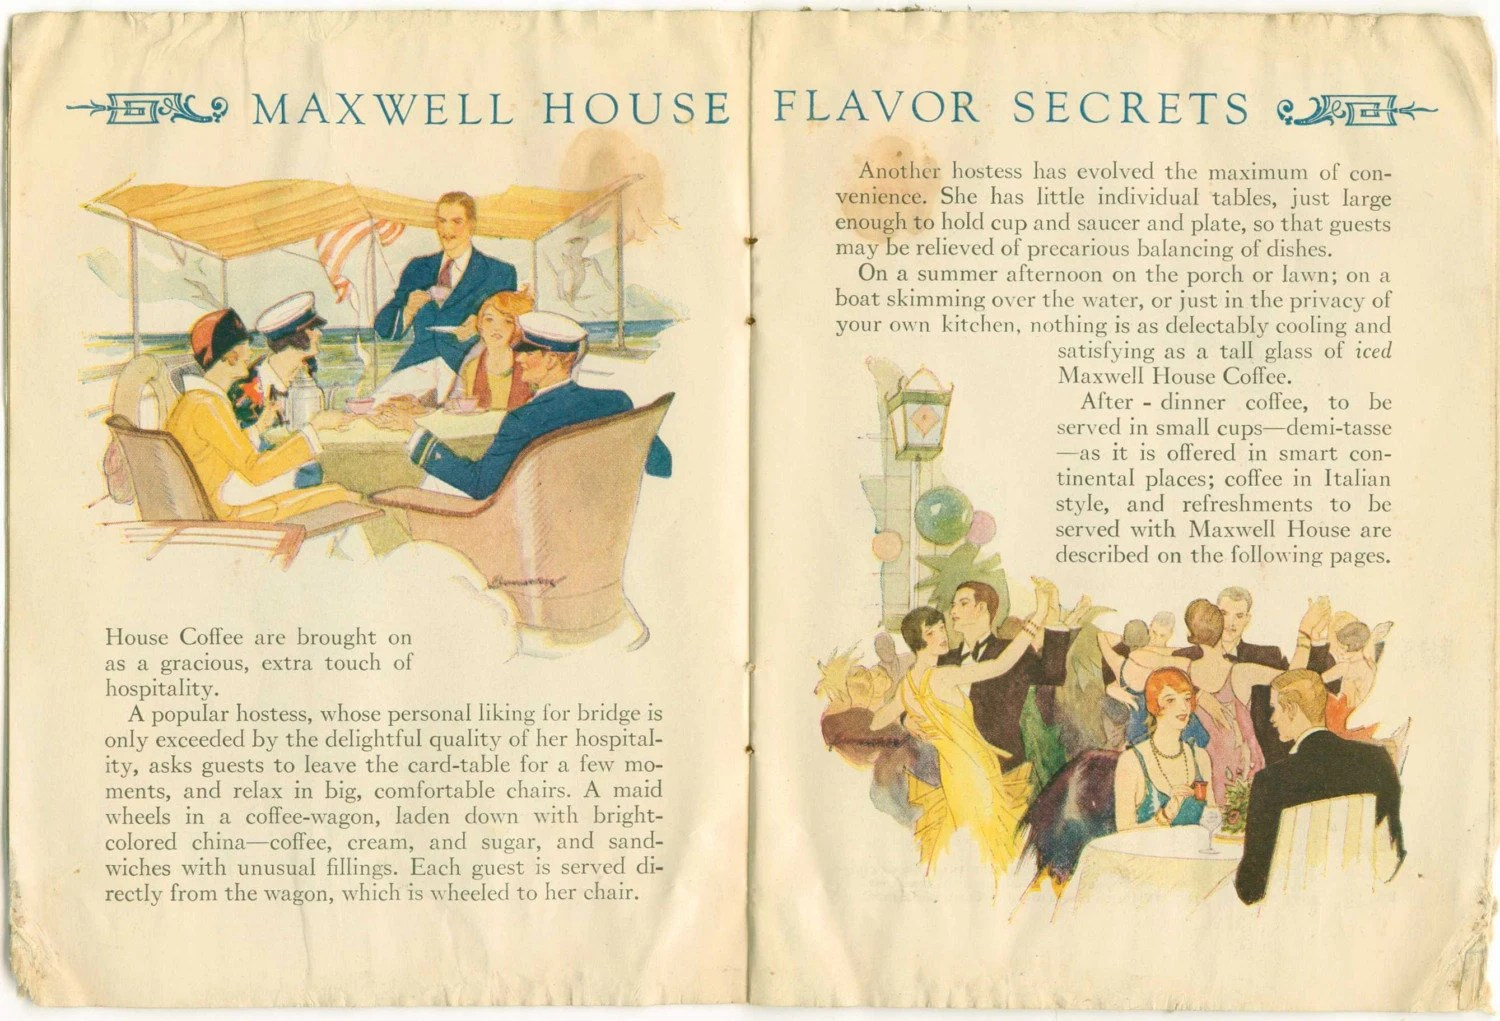 Vintage 1927 Secrets of Coffee Flavor pamphlet